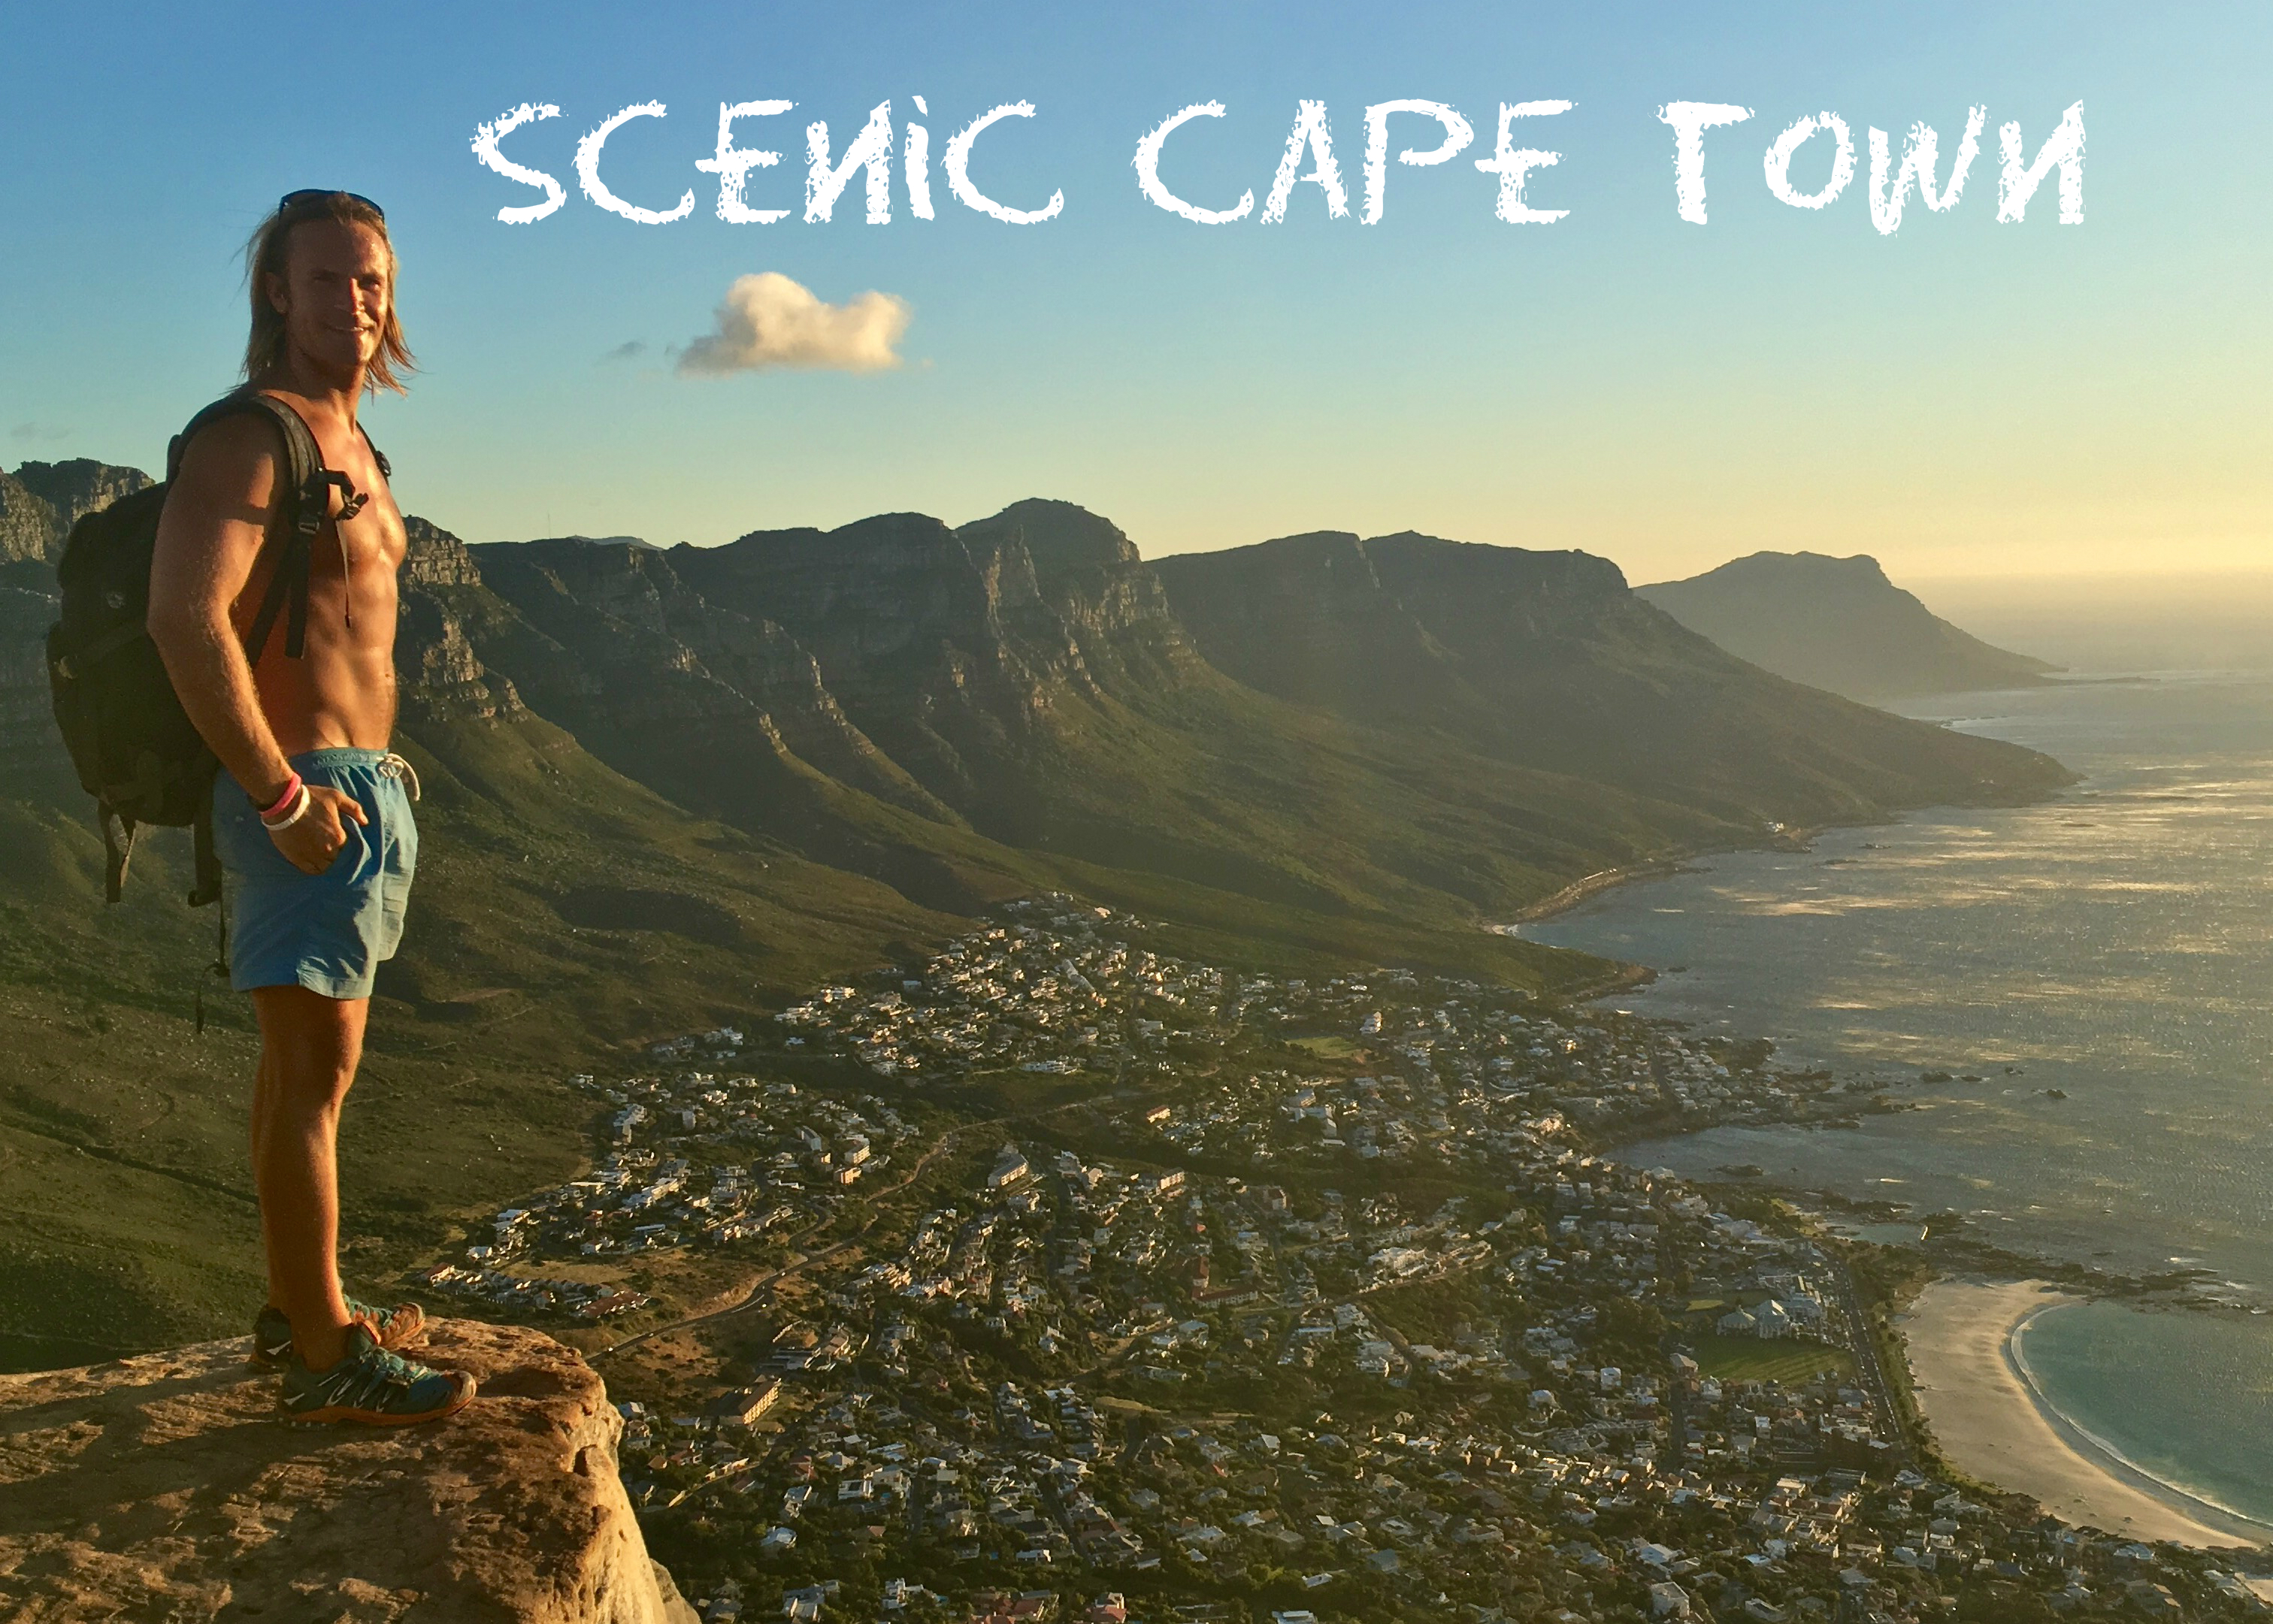 One of my top 3 favorite cities. This one has it all! Beaches, mountains, nice architecture, great weather, low prices and fantastis surroundings if you rent a car and drive. Perhaps the Cape of Good Hope or Safari can tempt you?